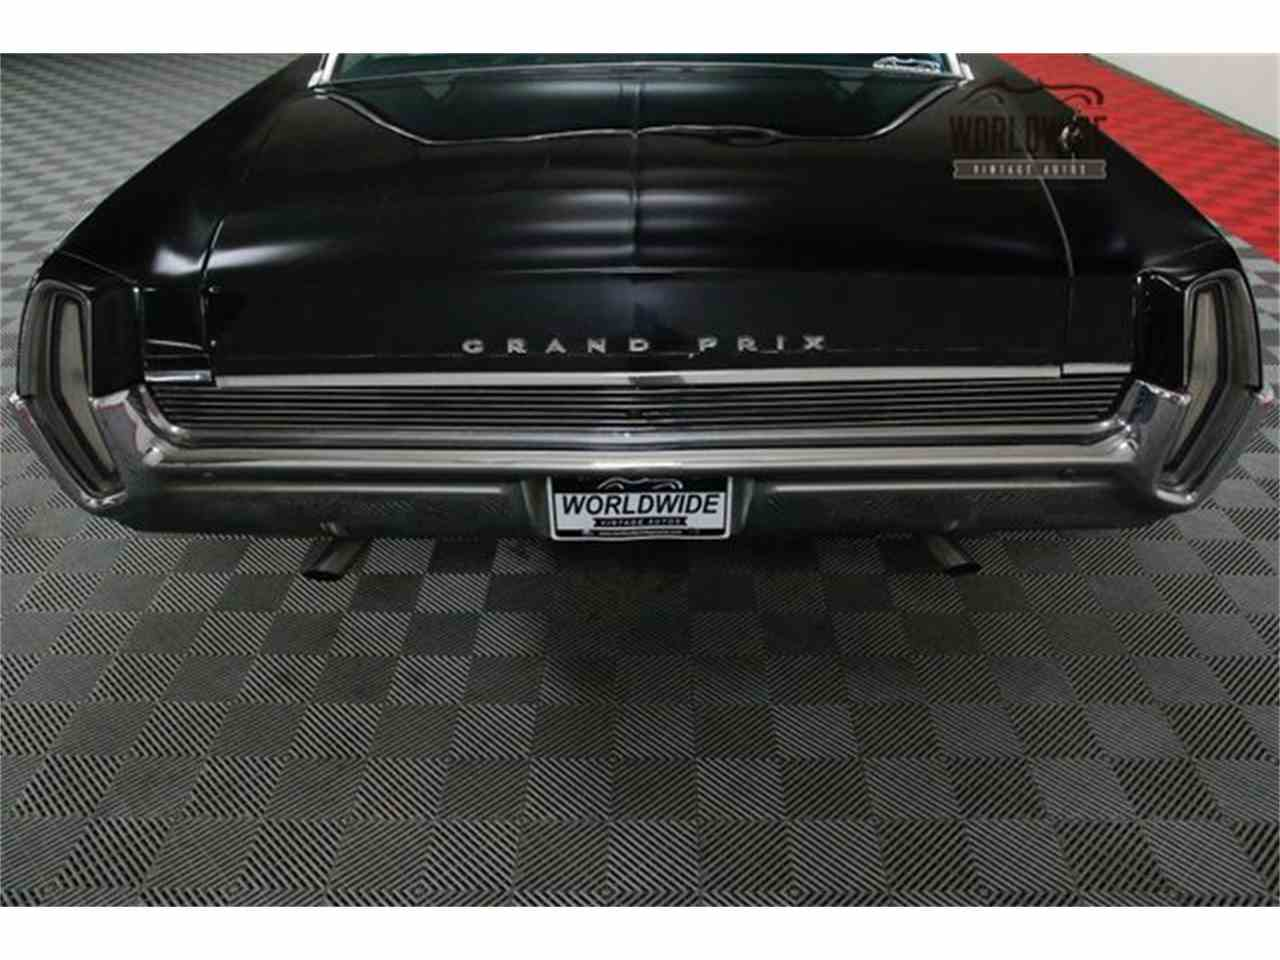 Large Picture of Classic 1964 Pontiac Grand Prix located in Denver  Colorado - $19,900.00 Offered by Worldwide Vintage Autos - MGJE